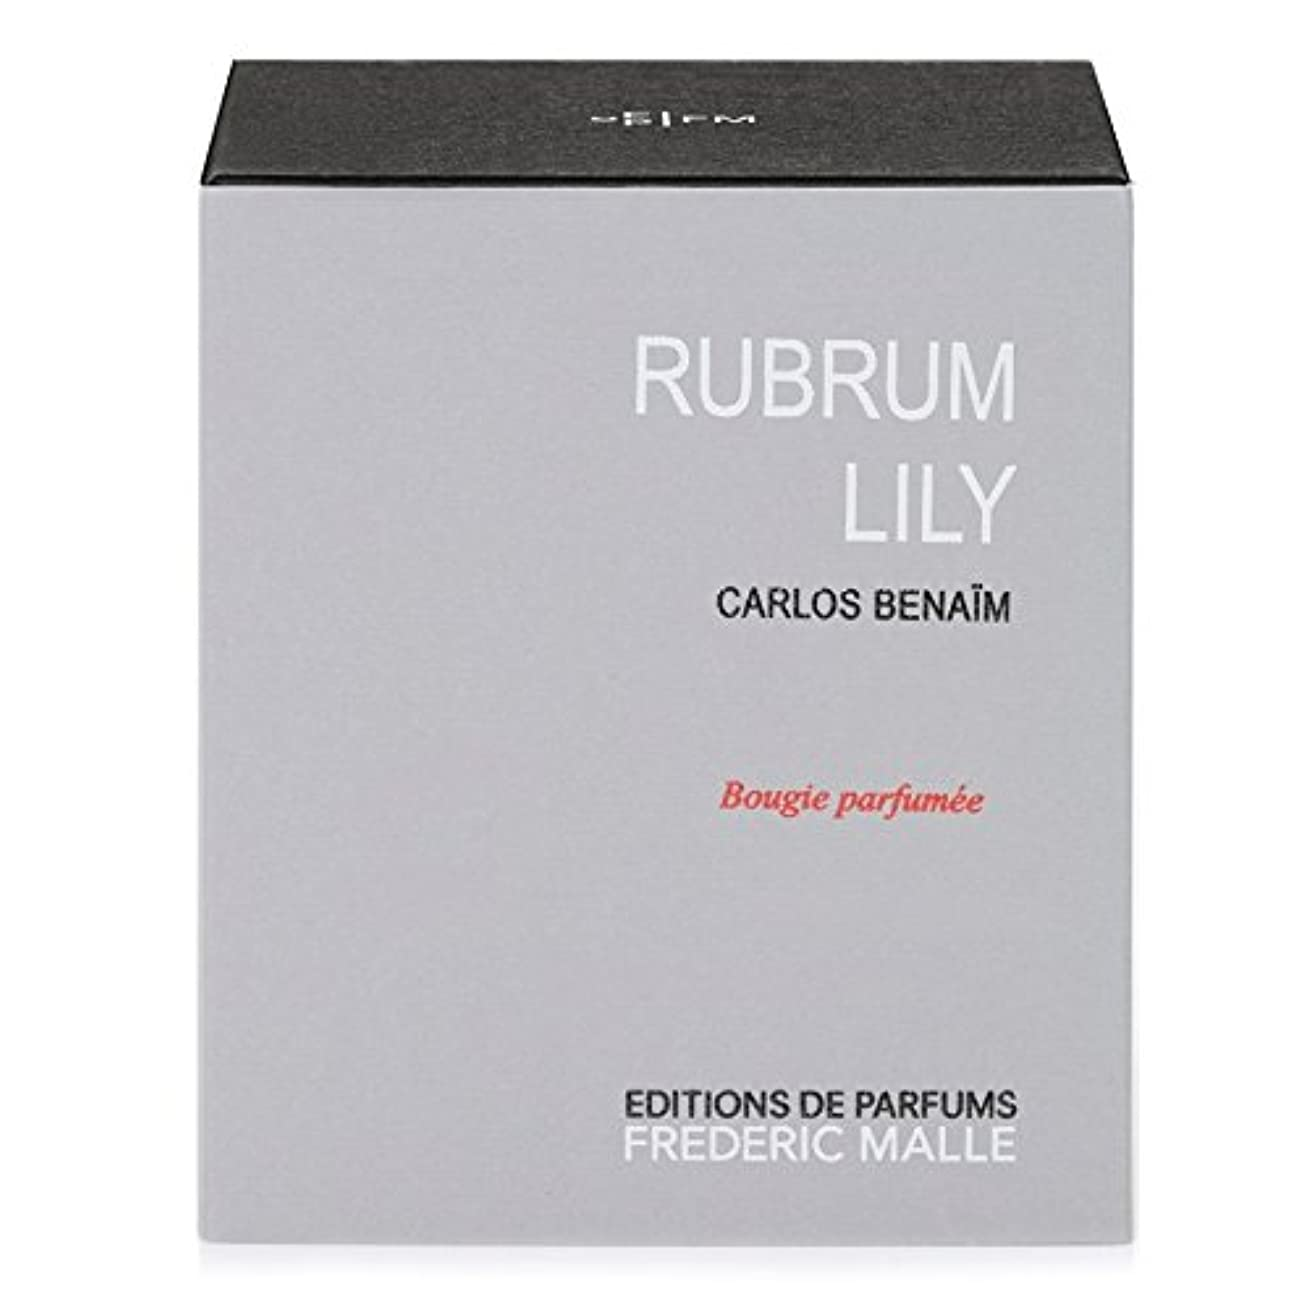 Frederic Malle Rubrum Lily Scented Candle (Pack of 4) - フレデリック?マルルブルムユリの香りのキャンドル x4 [並行輸入品]